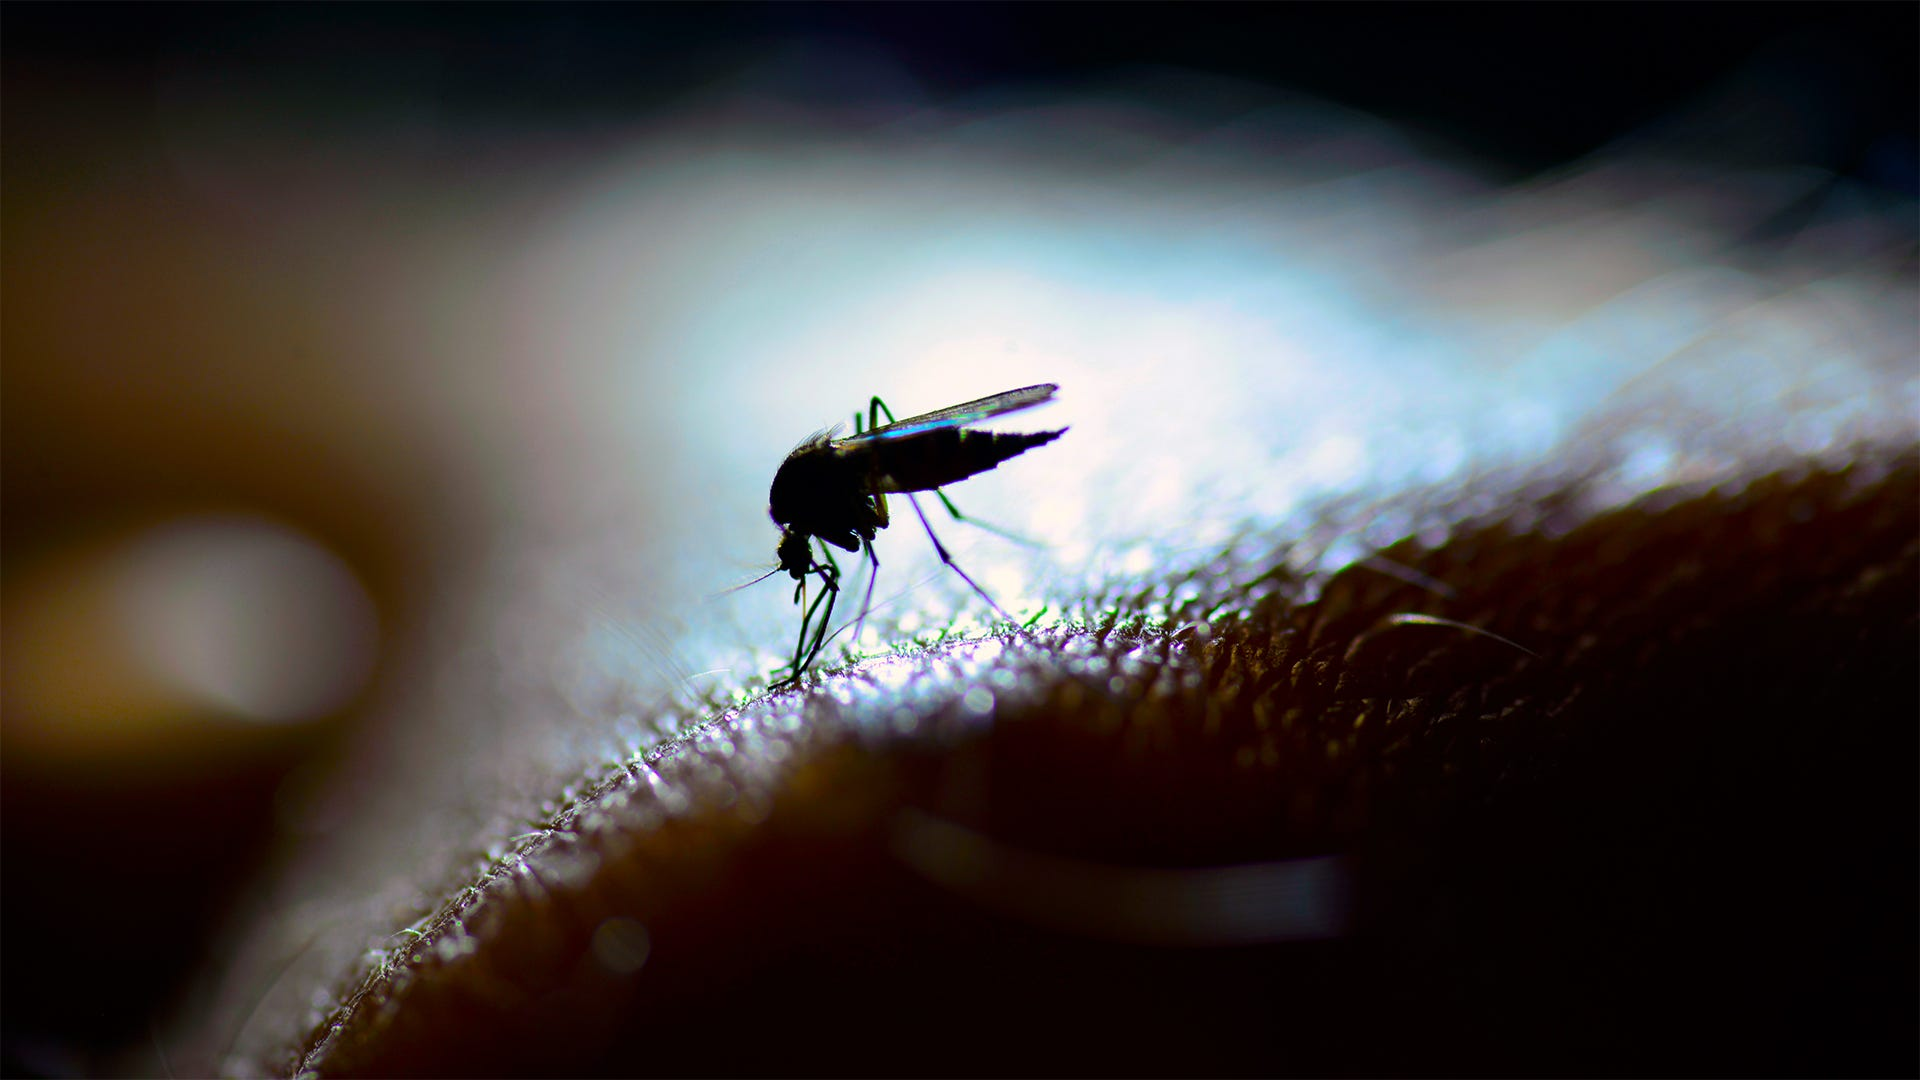 Female vs Male Mosquitoes: What's the Difference?